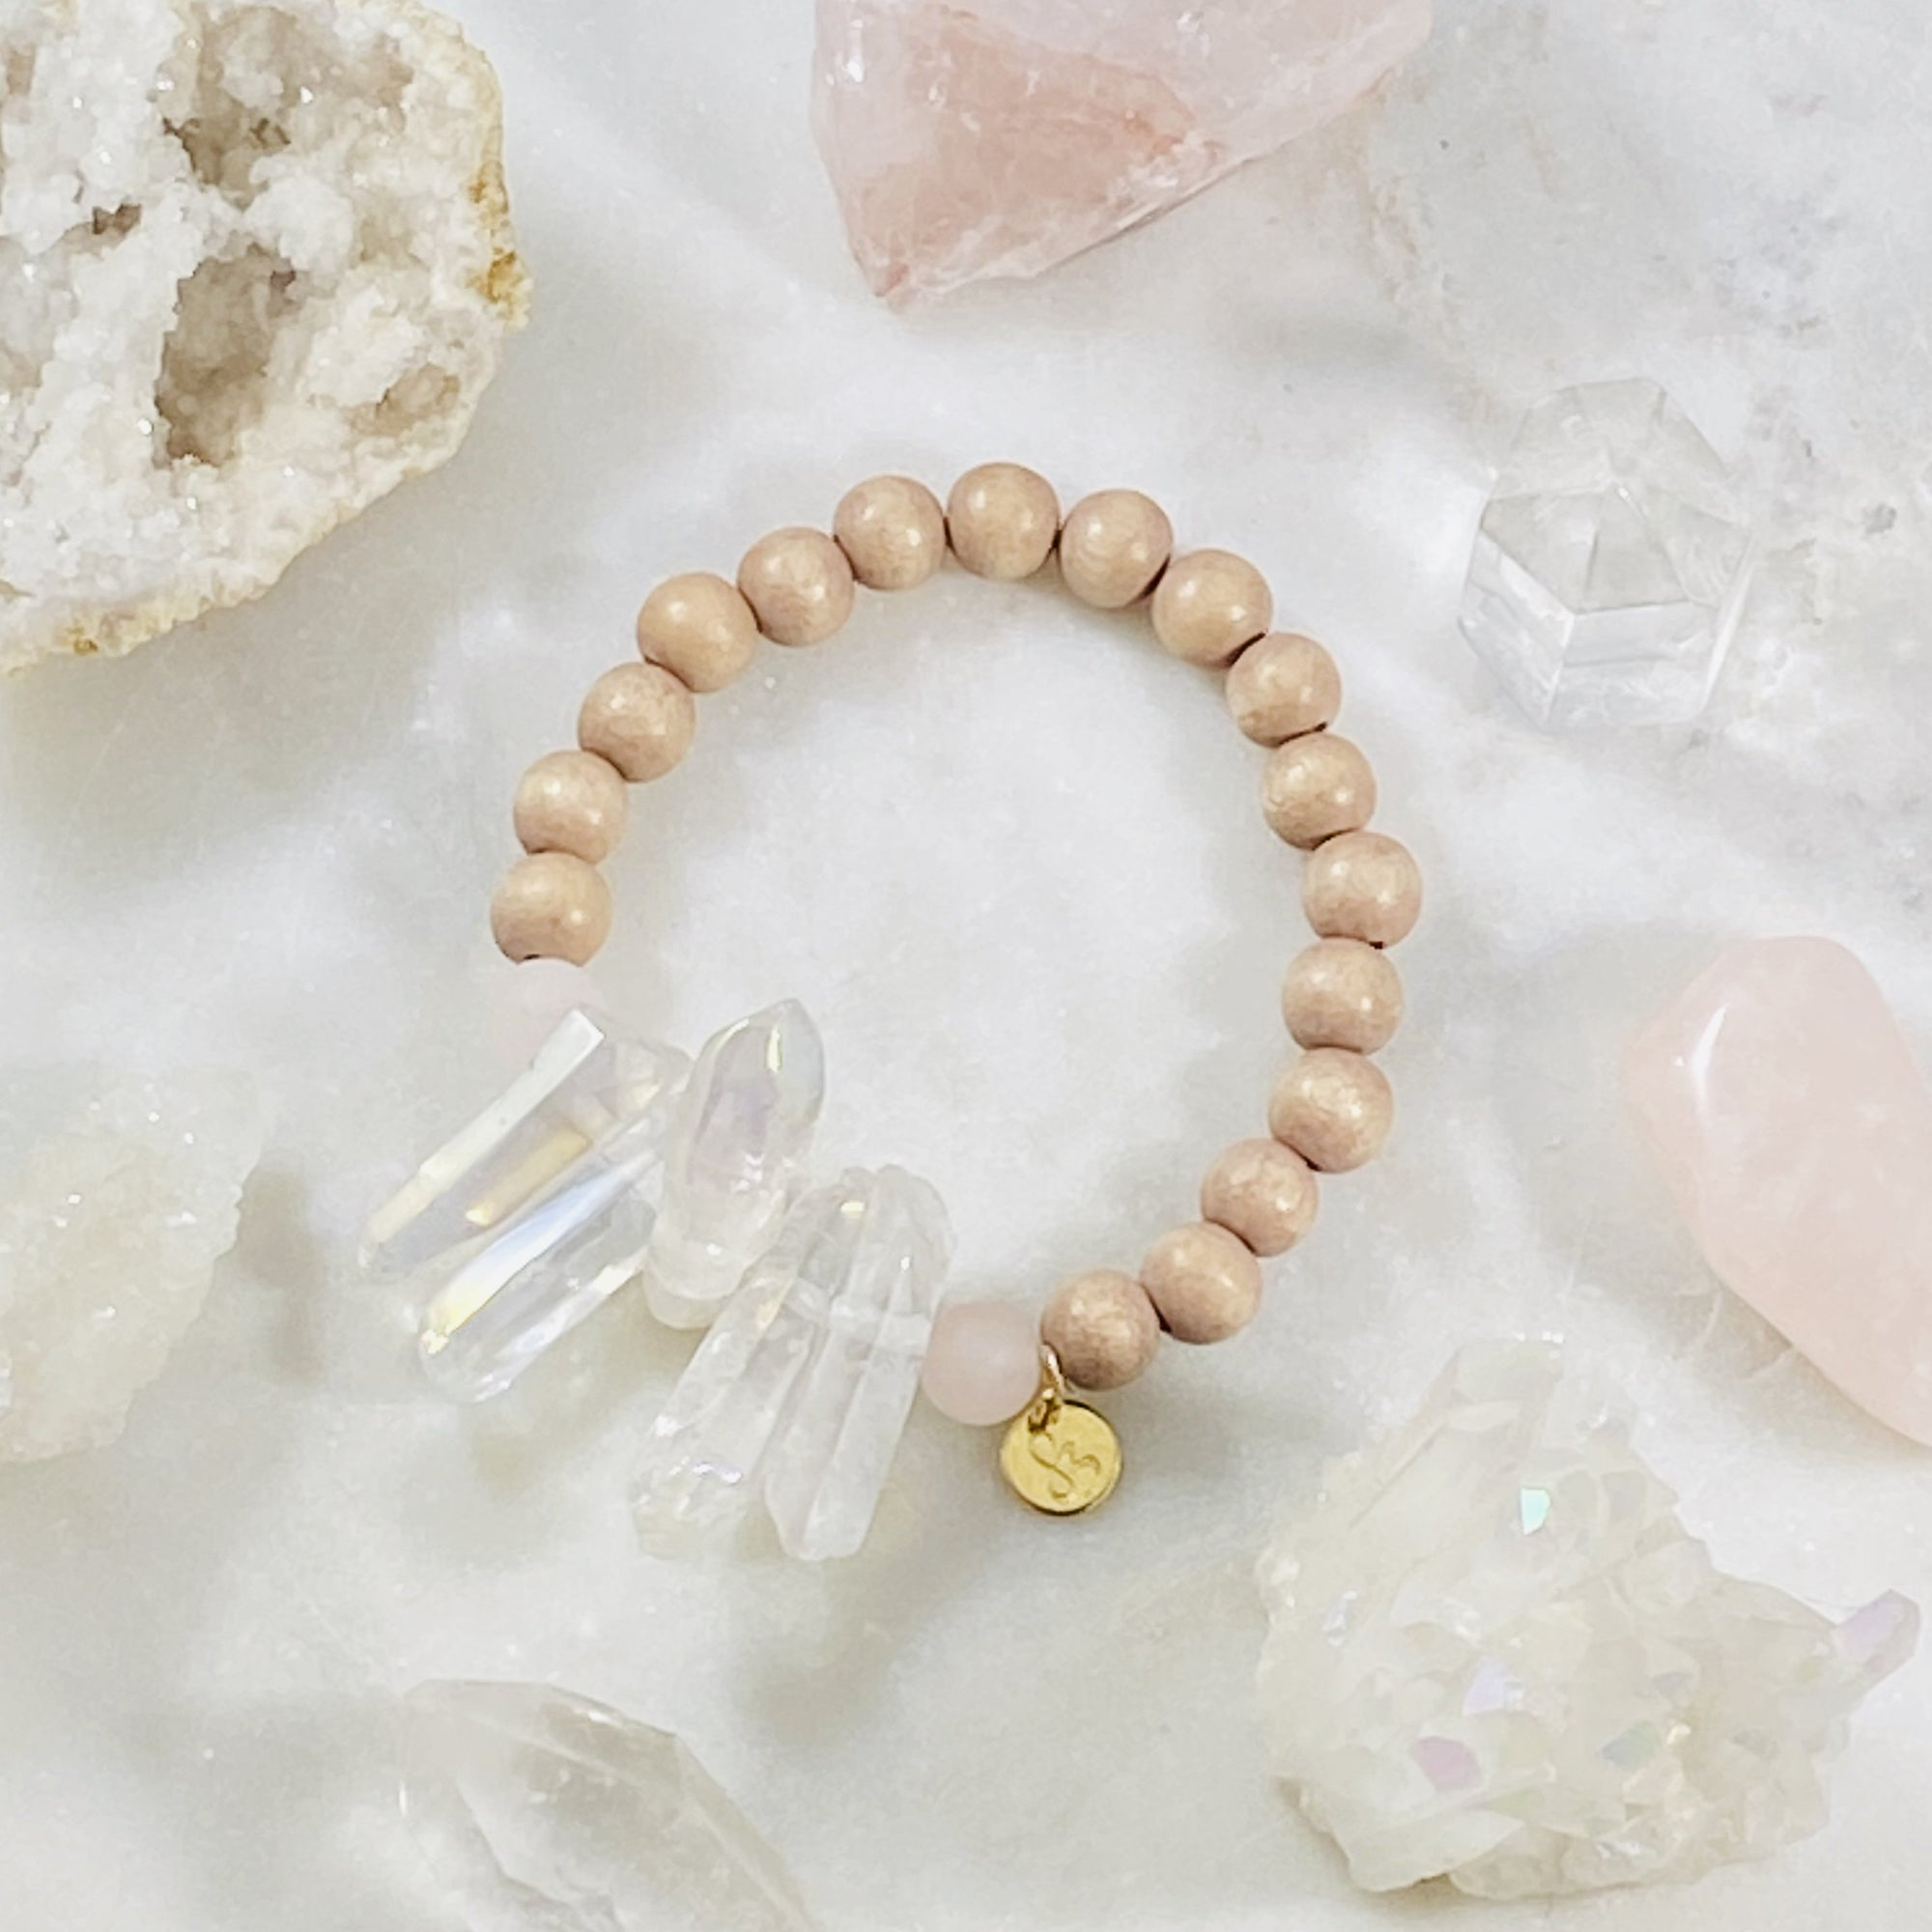 Luminous Stacking Bracelet